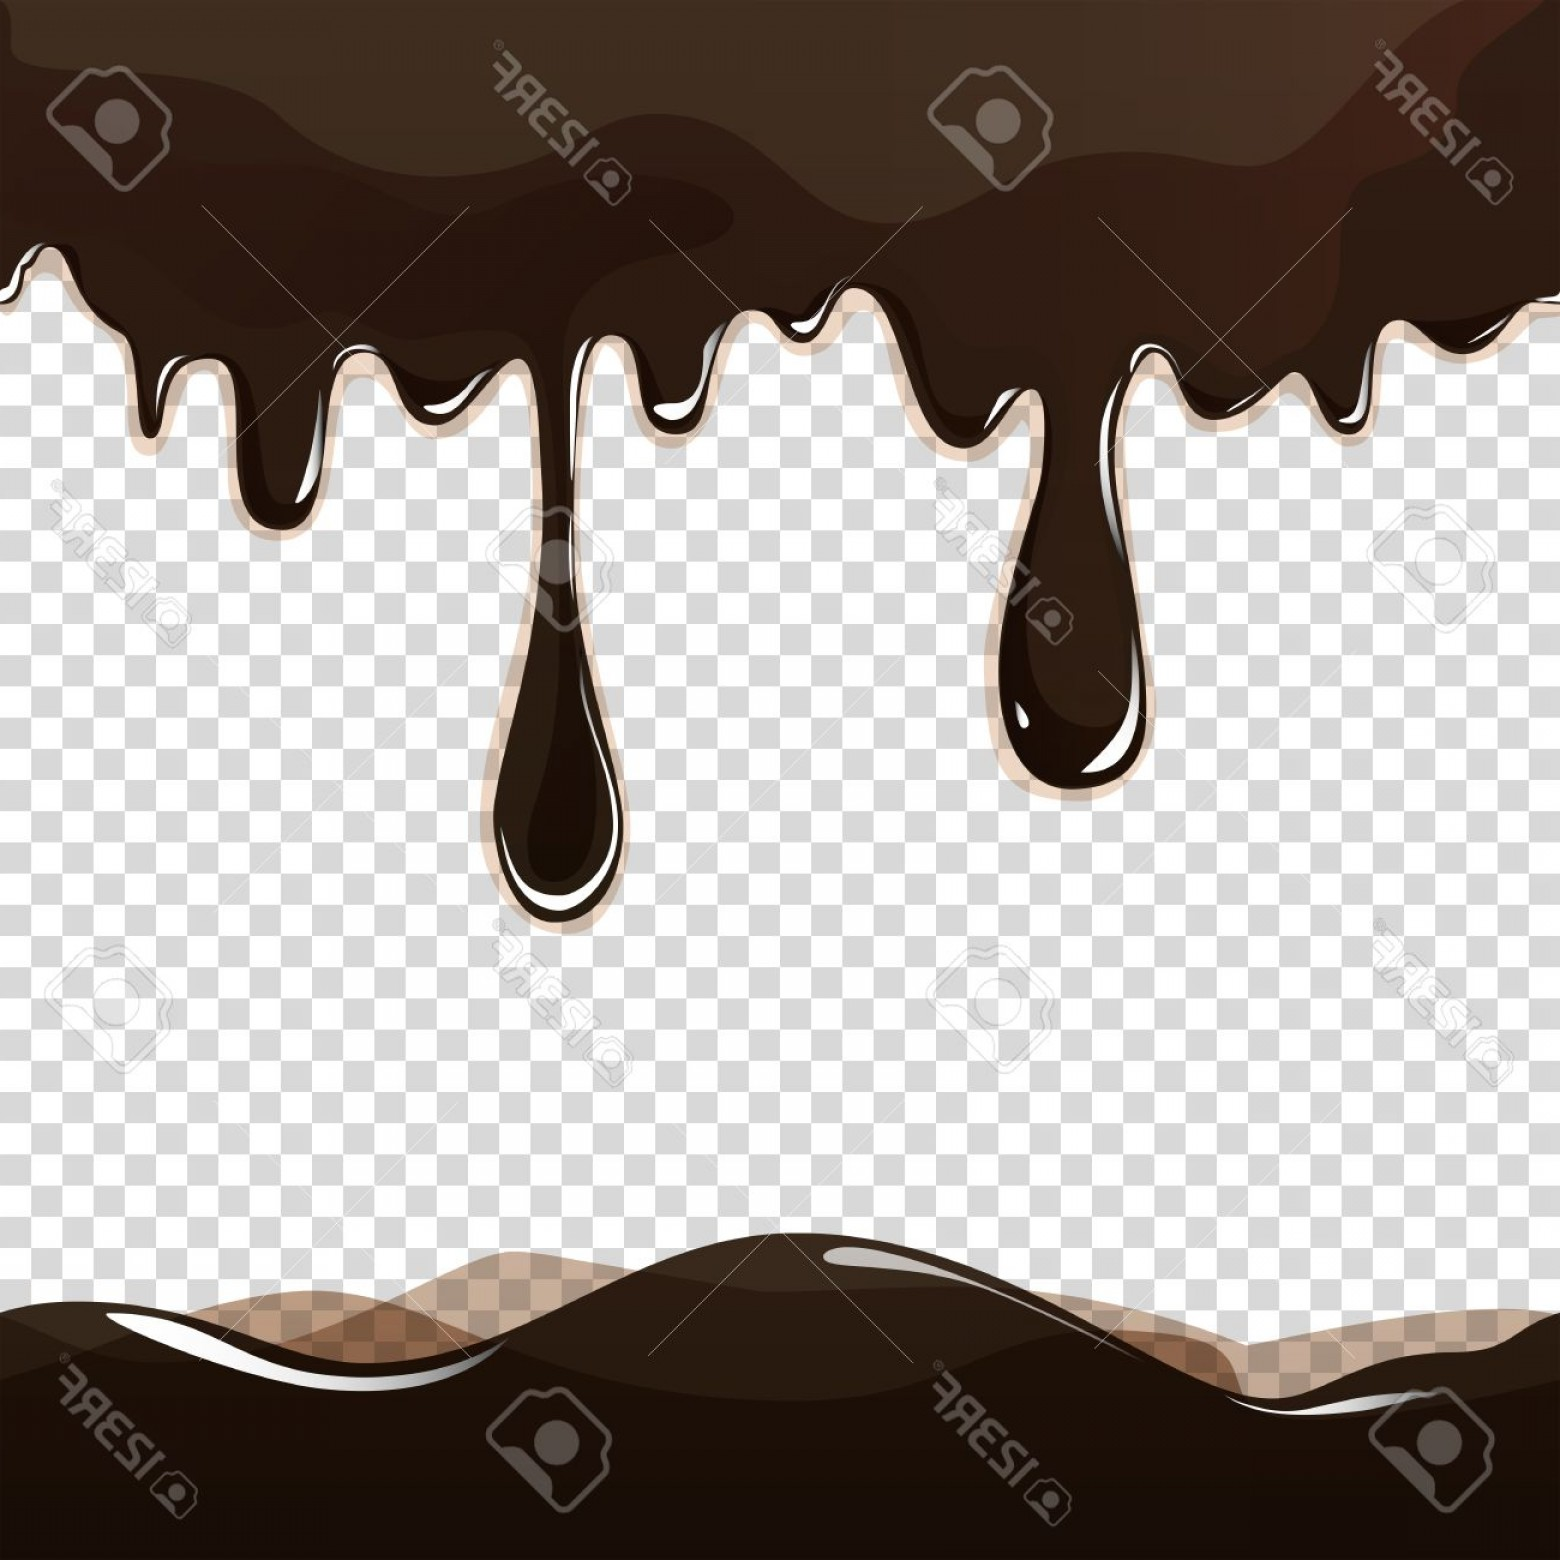 Transparent Brown Vector Background: Photostock Vector Seamless Flowing Melted Chocolate Dripping Isolated On Transparent Background Vector Eps